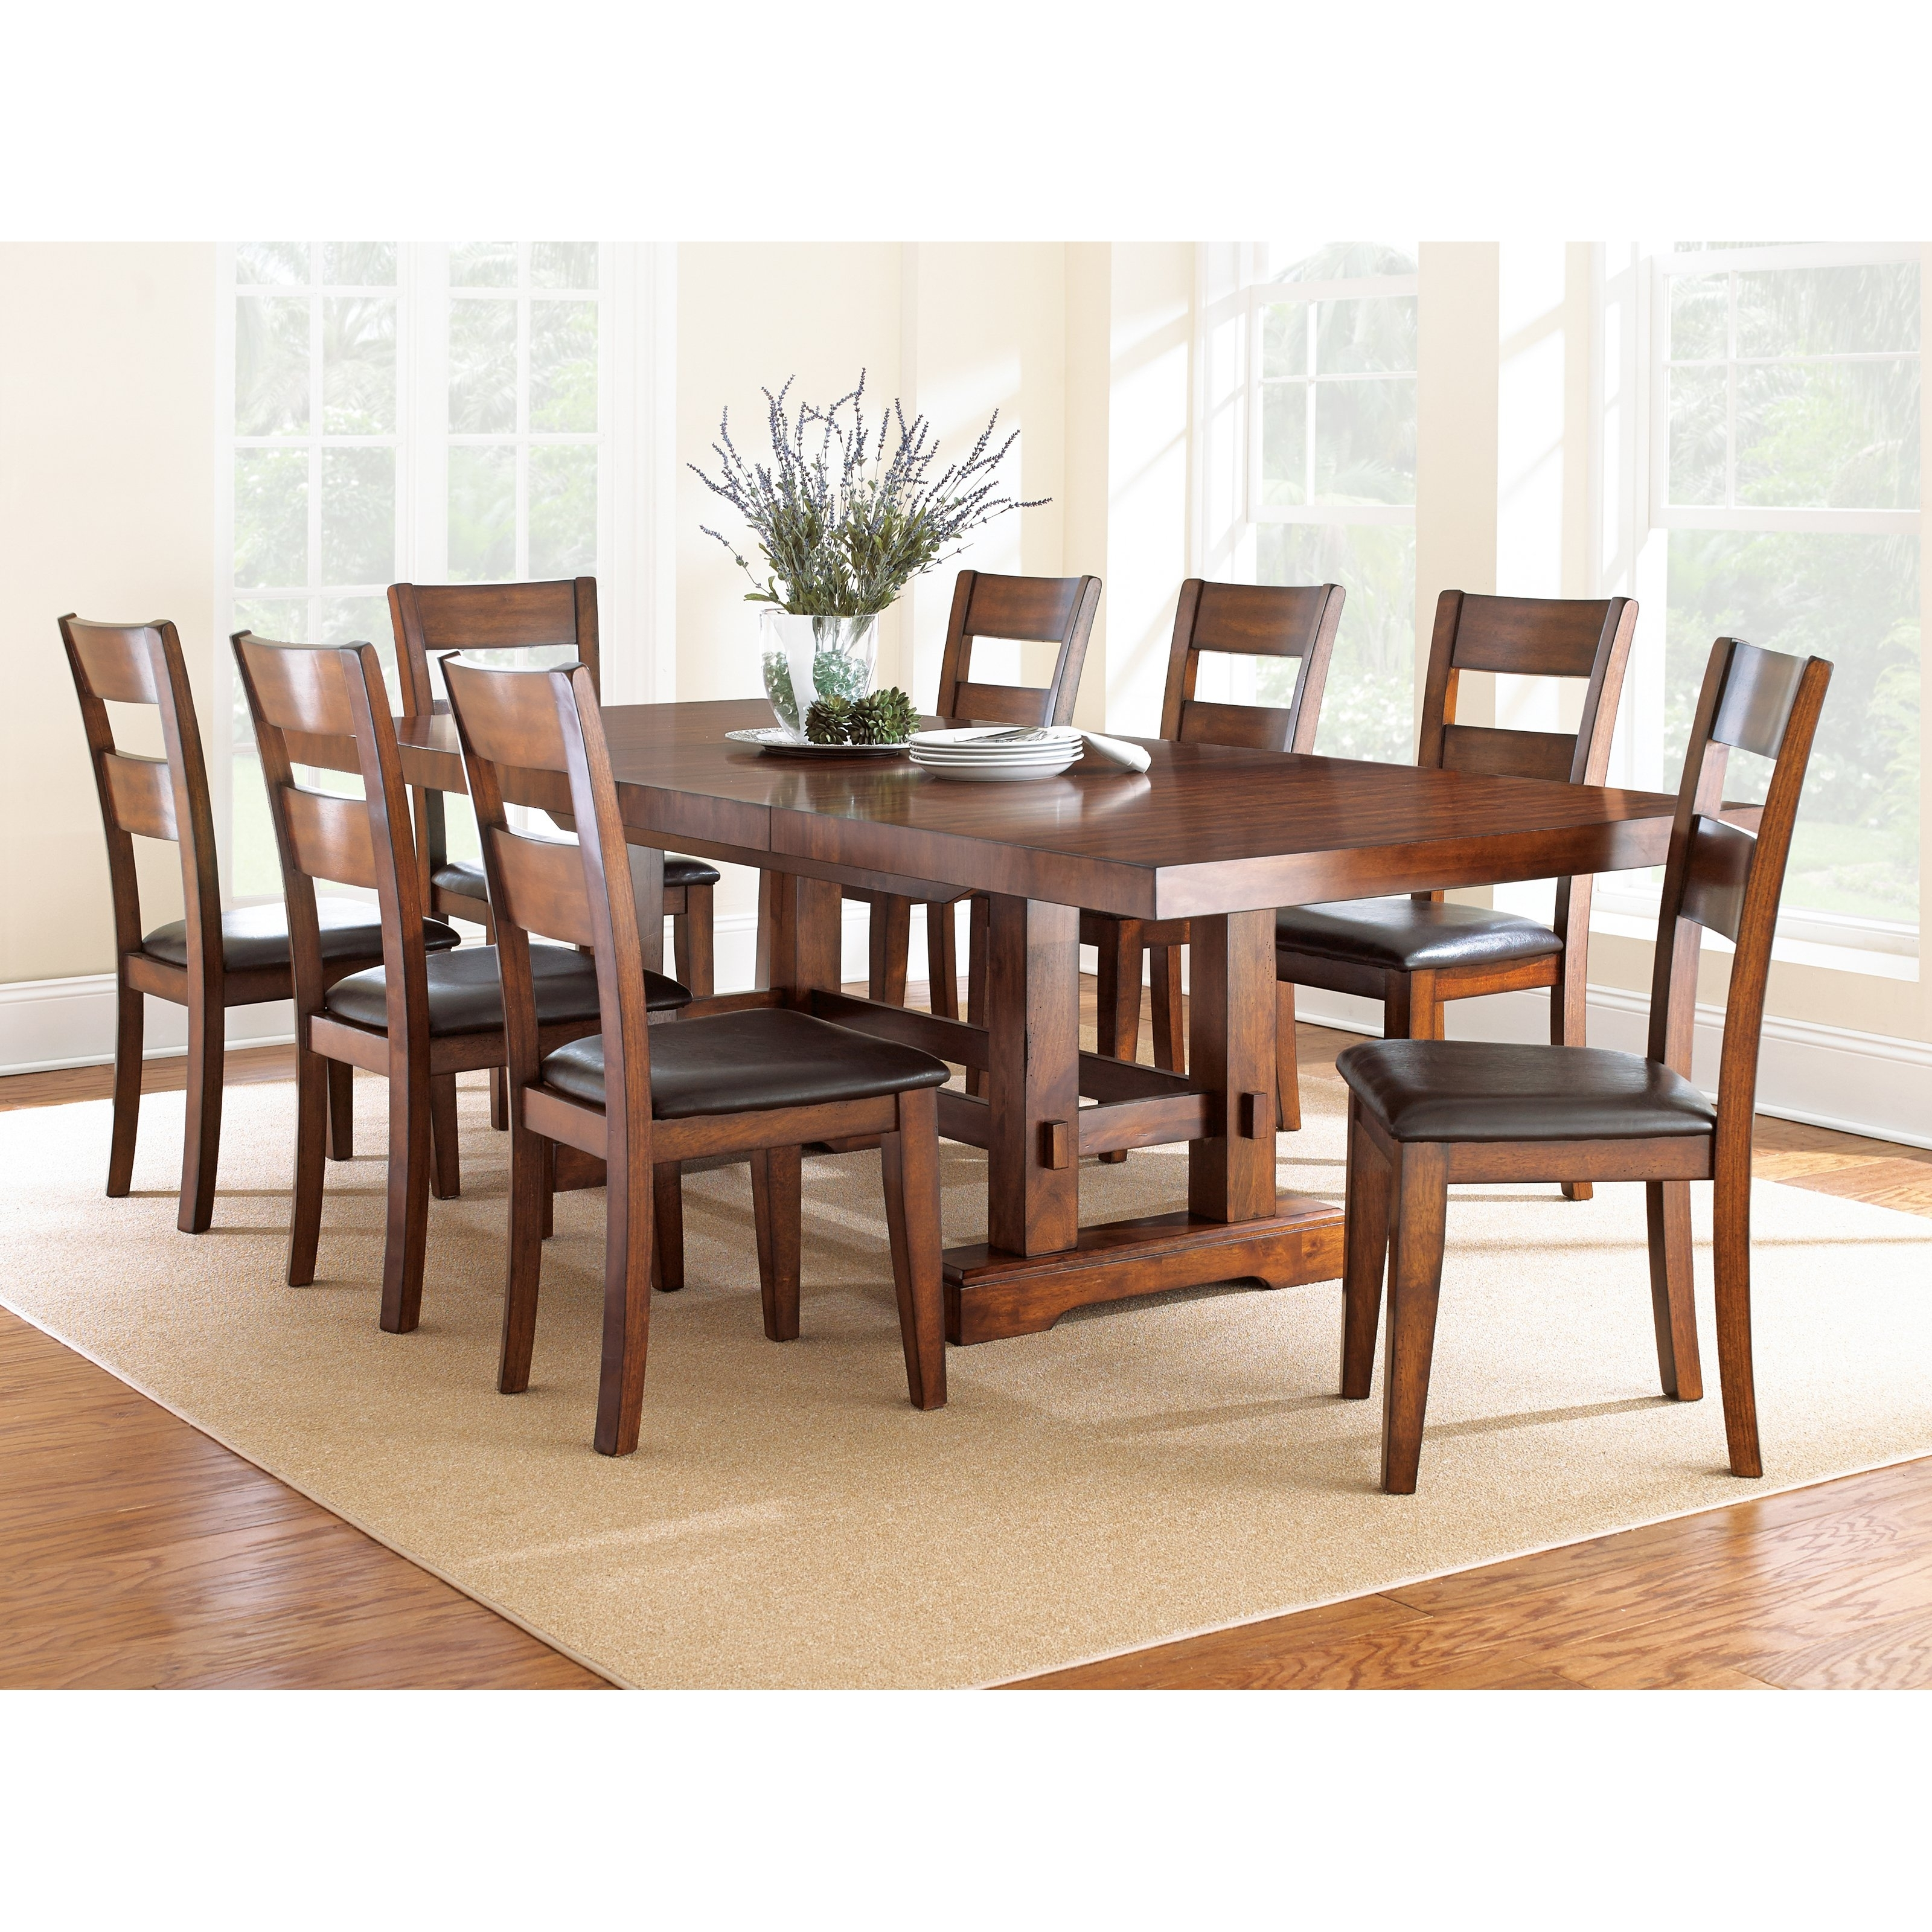 Most Up To Date Dining Tables With 8 Chairs With Steve Silver Zappa 9 Piece Dining Table Set Medium Matching Bar (View 19 of 25)